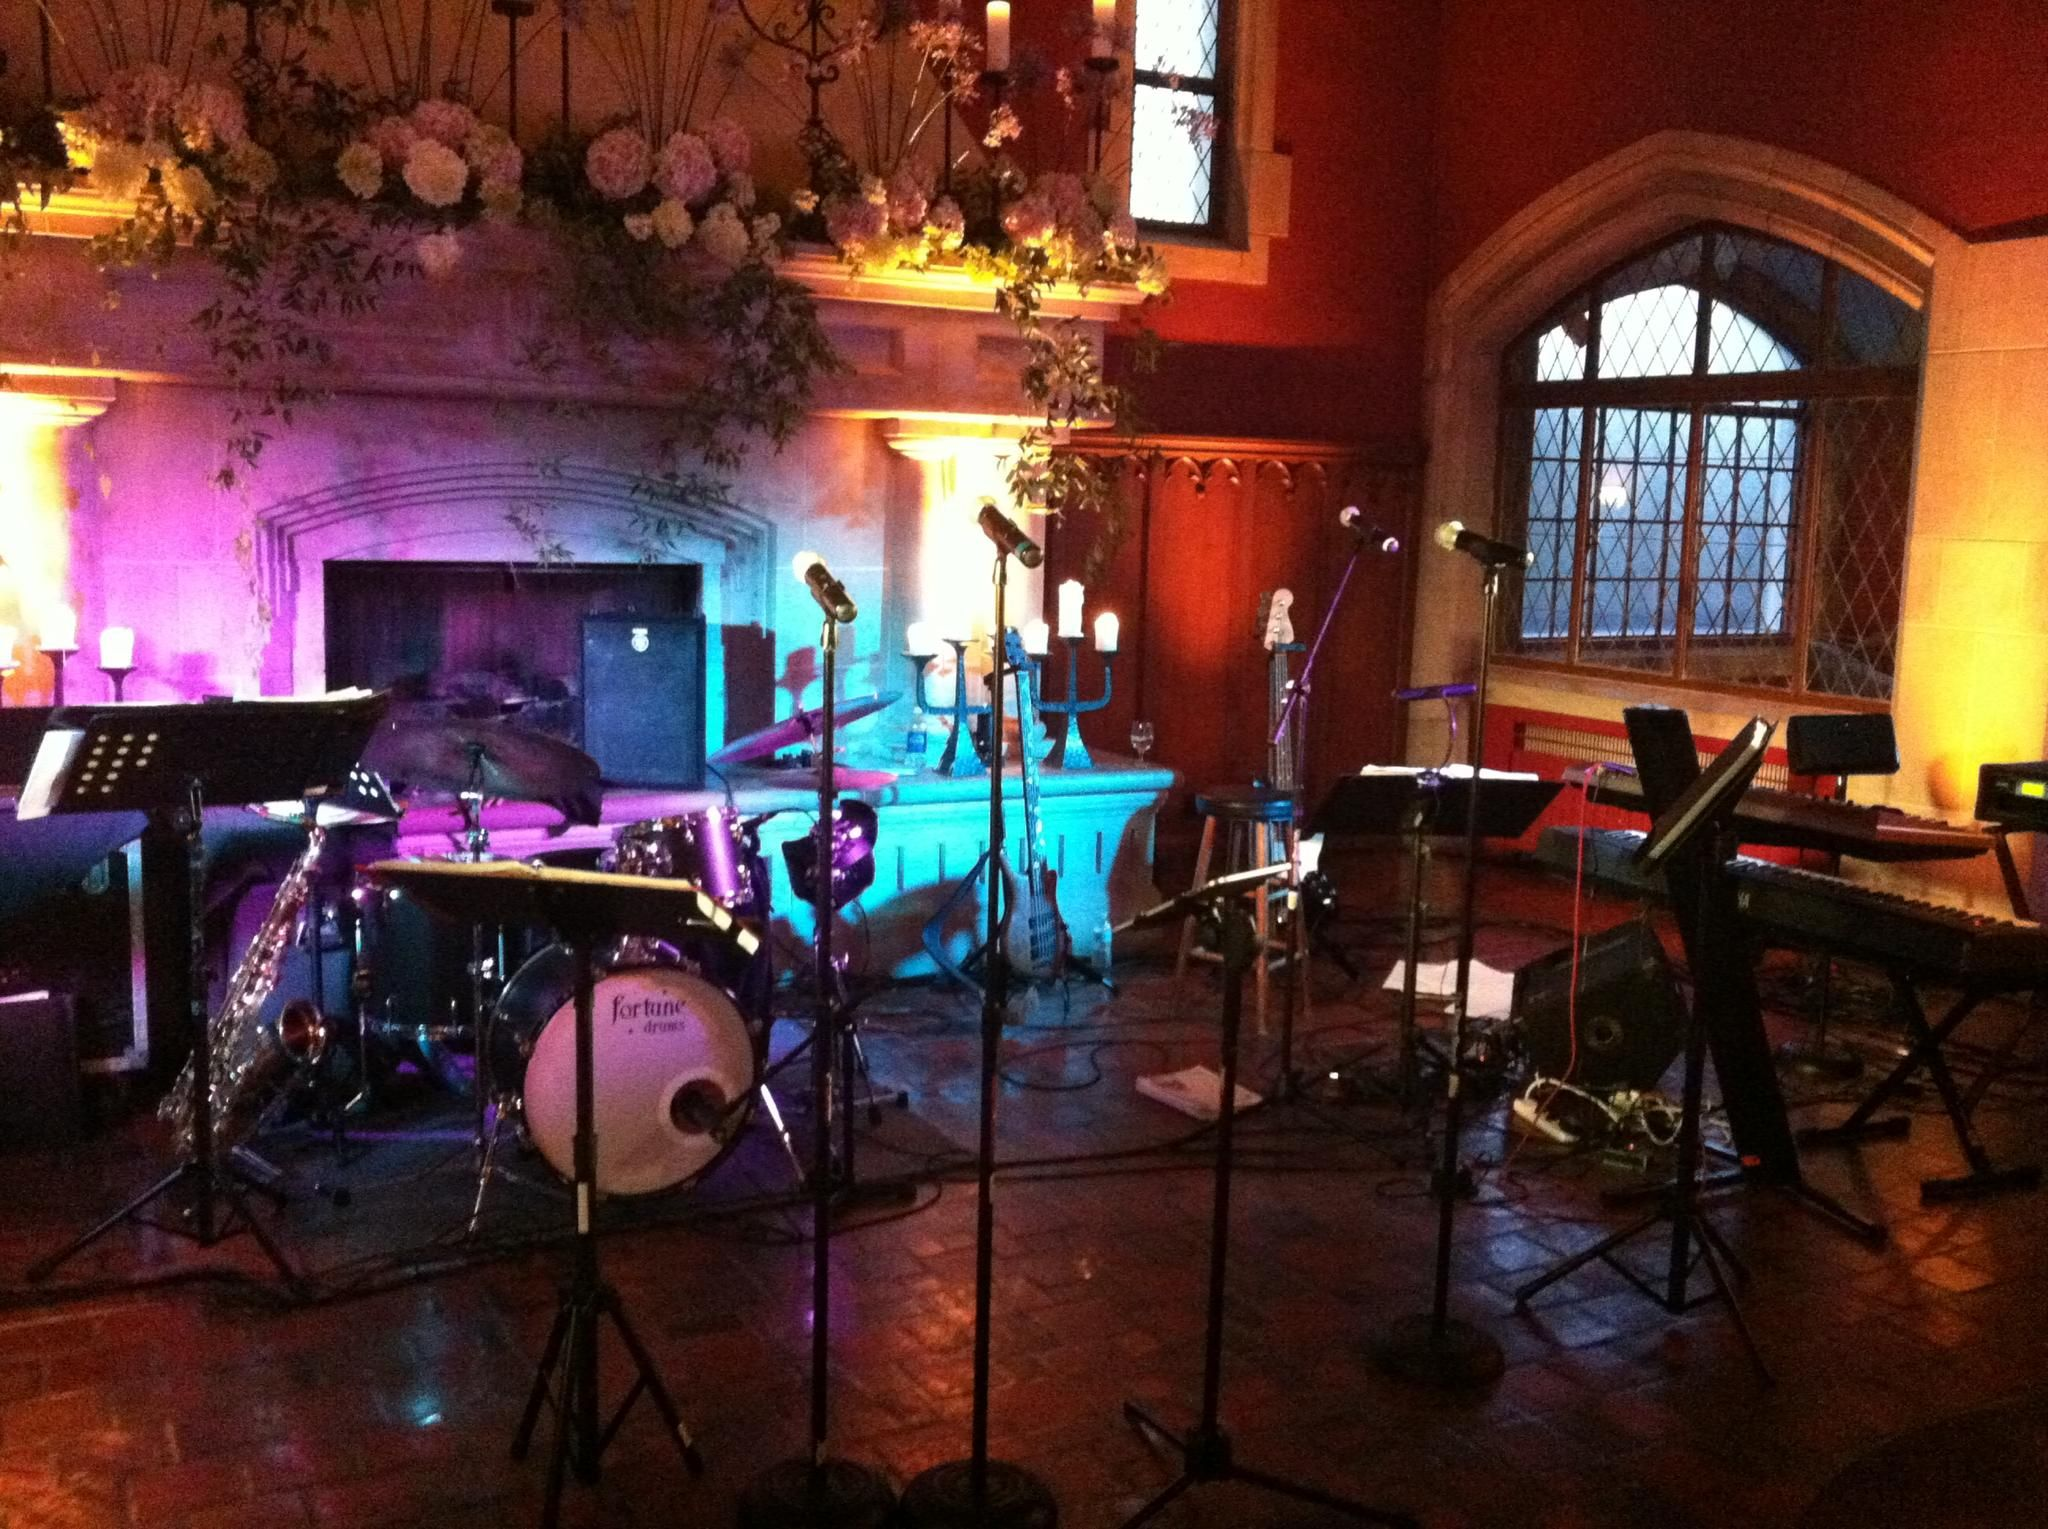 The avenueus set up for hallie u elliottus reception